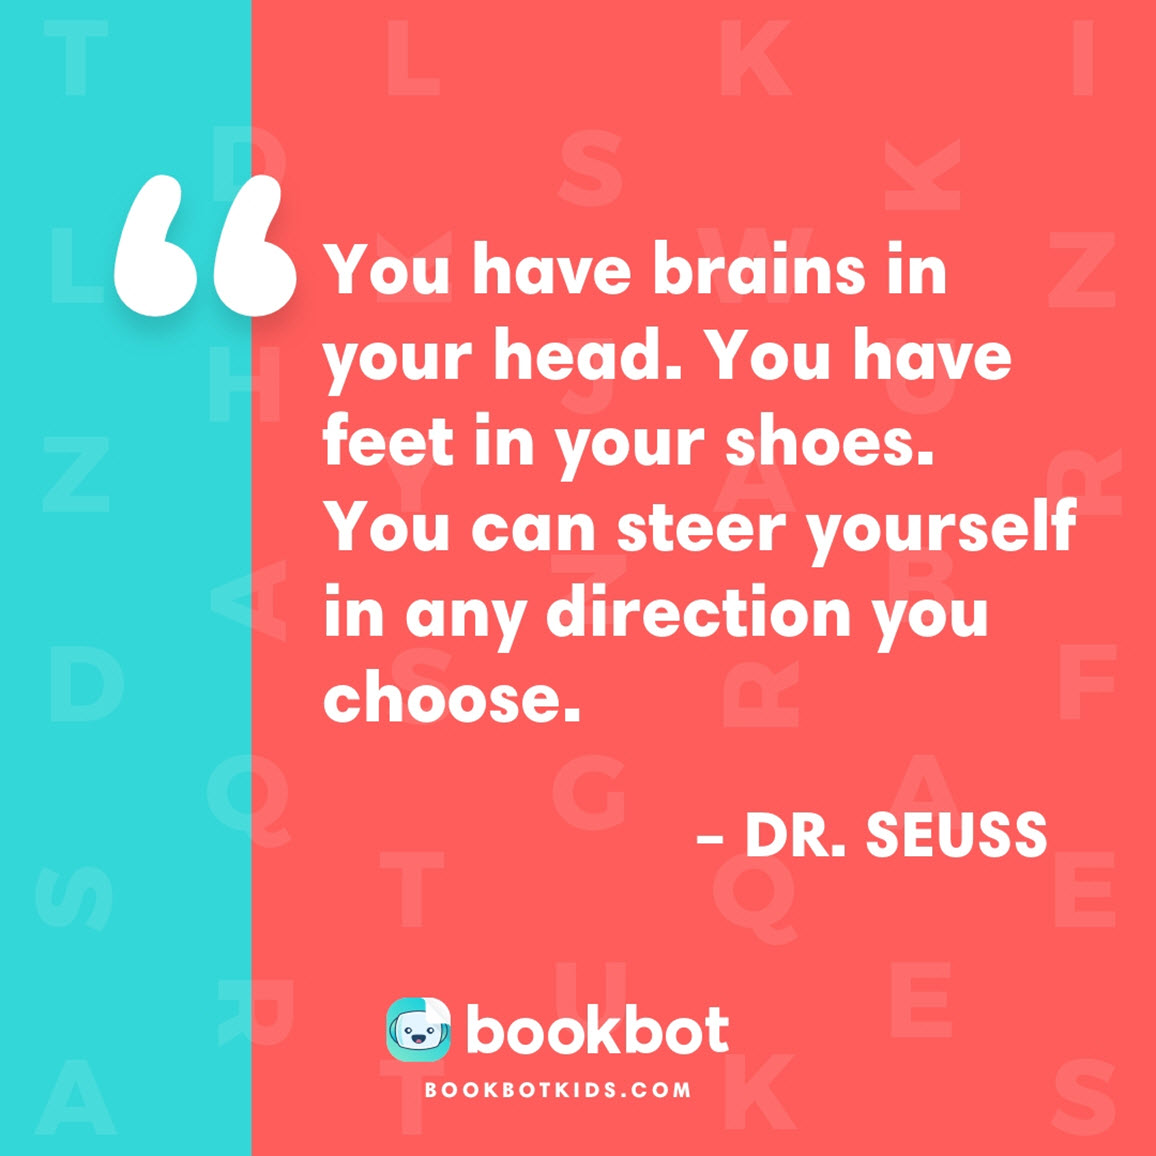 You have brains in your head. You have feet in your shoes. You can steer yourself in any direction you choose.  – Dr. Seuss